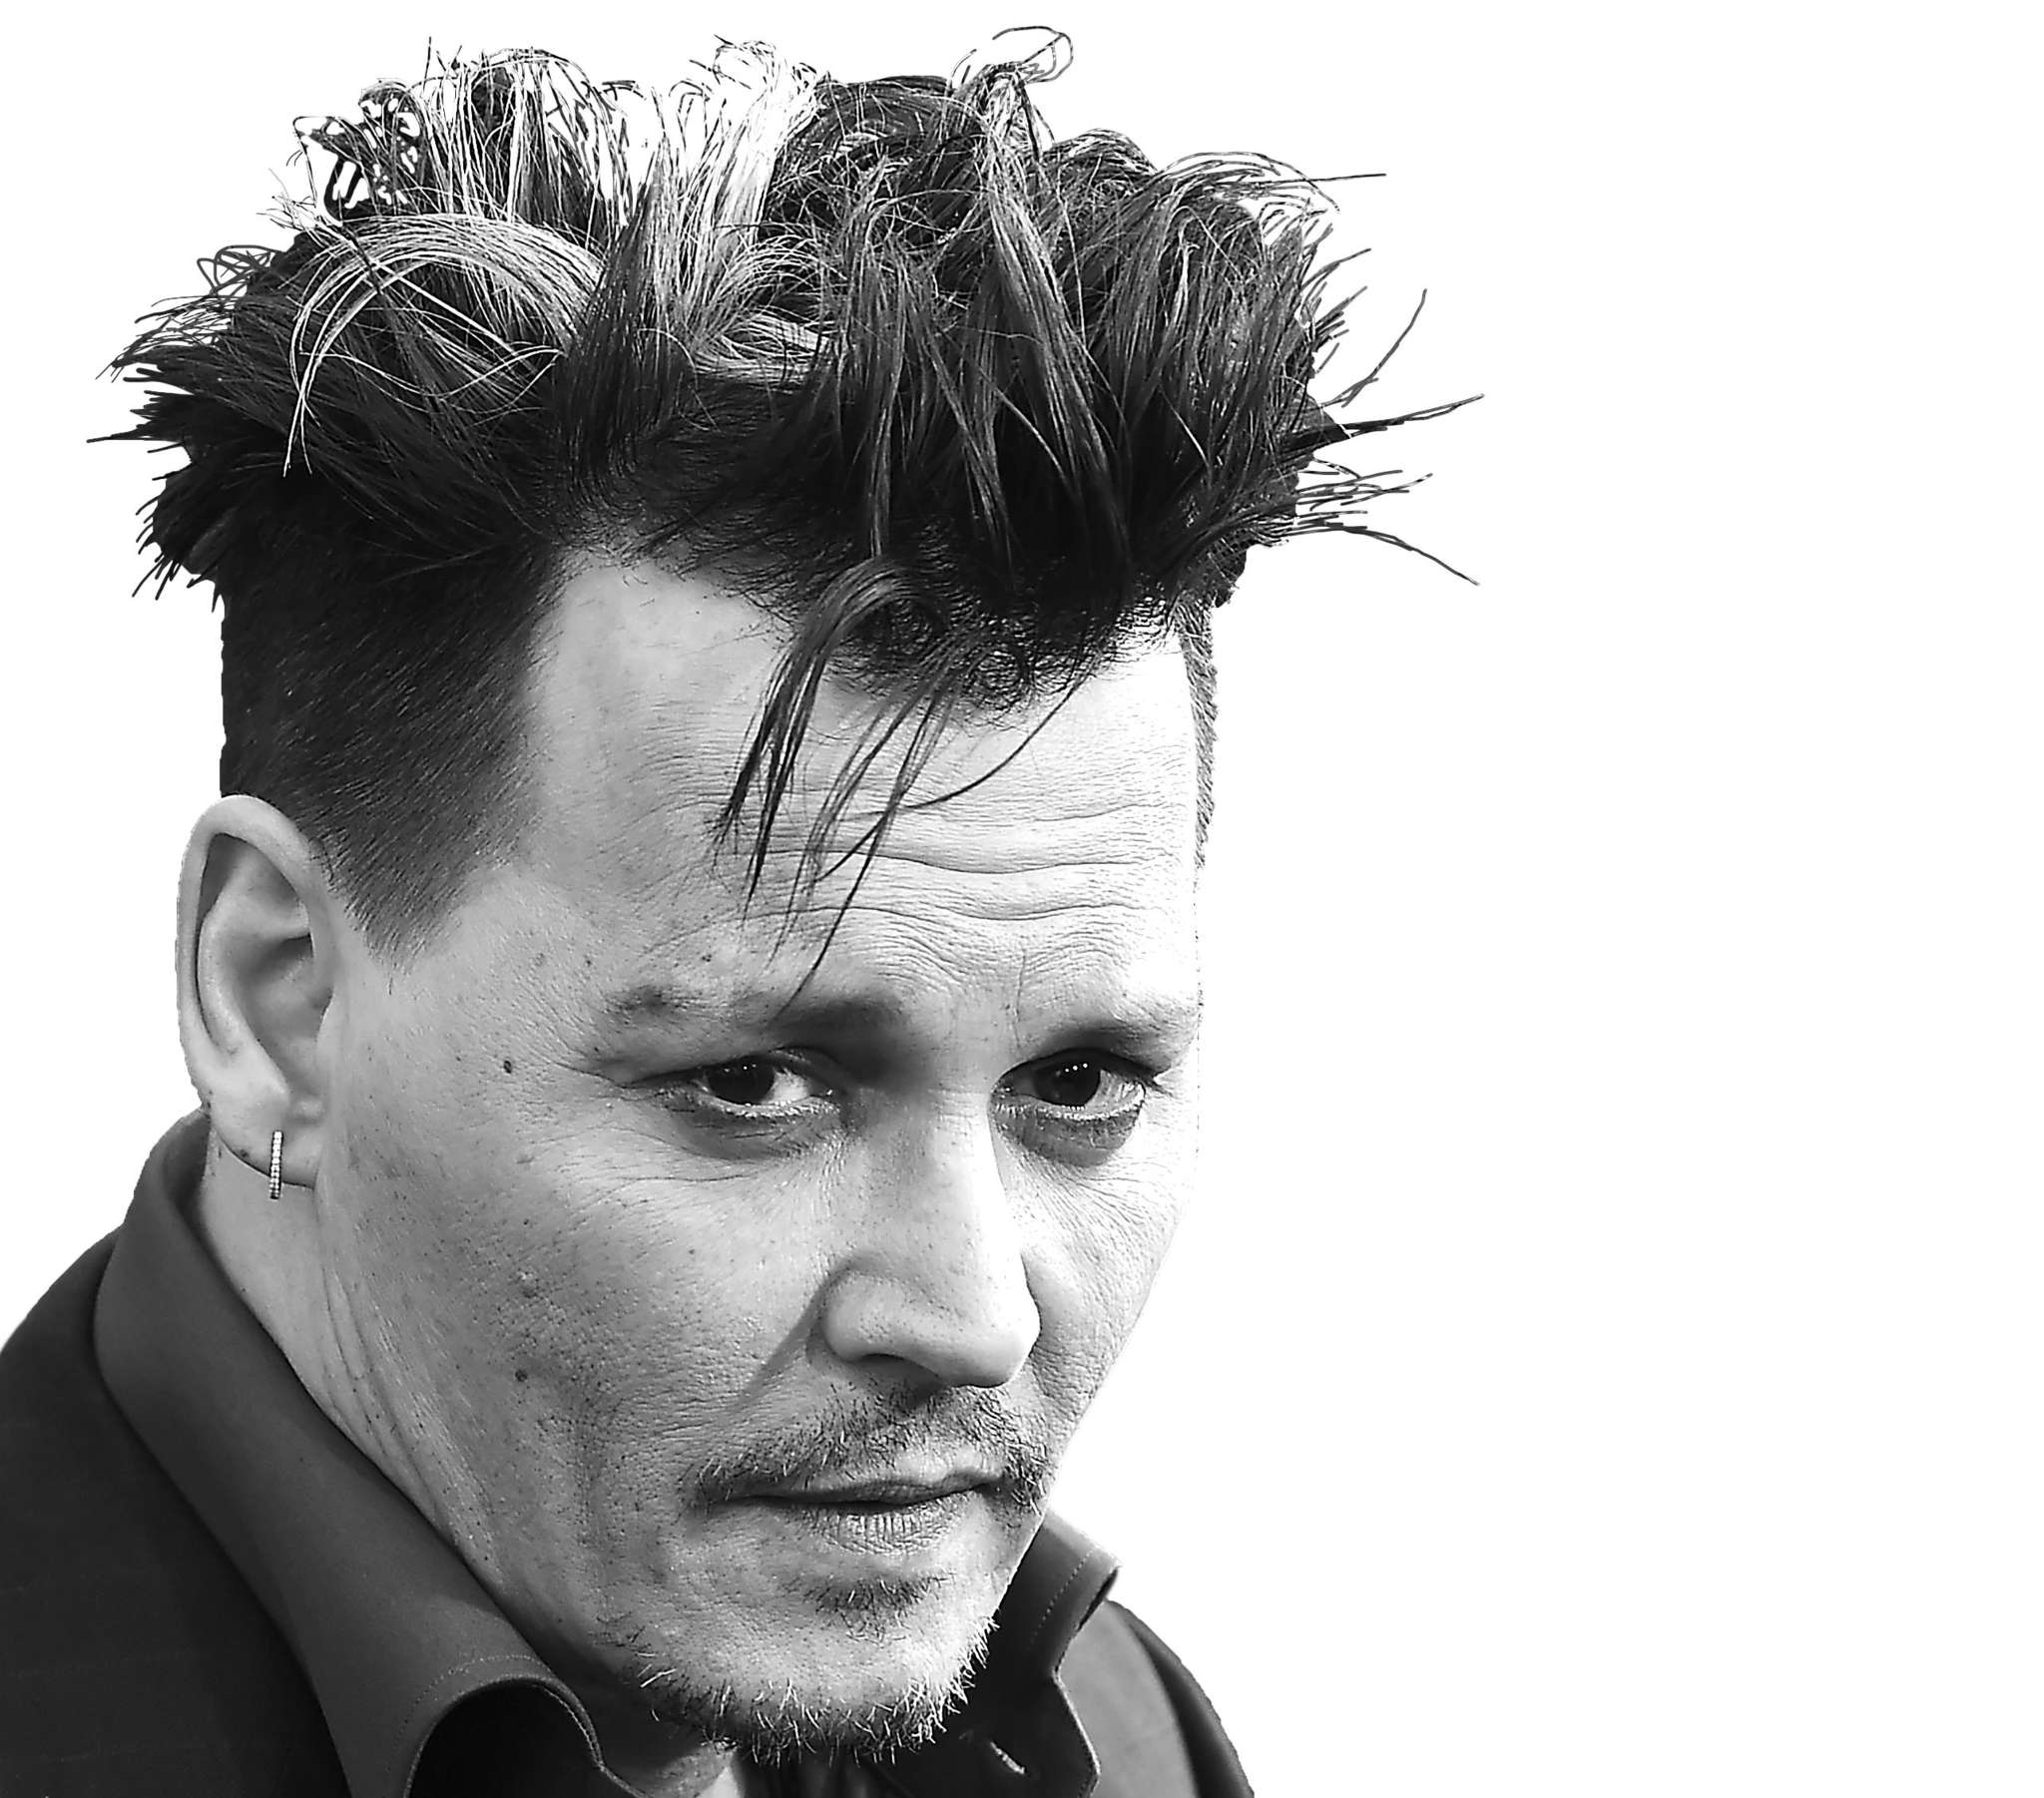 Johnny Depp: Social media on his side